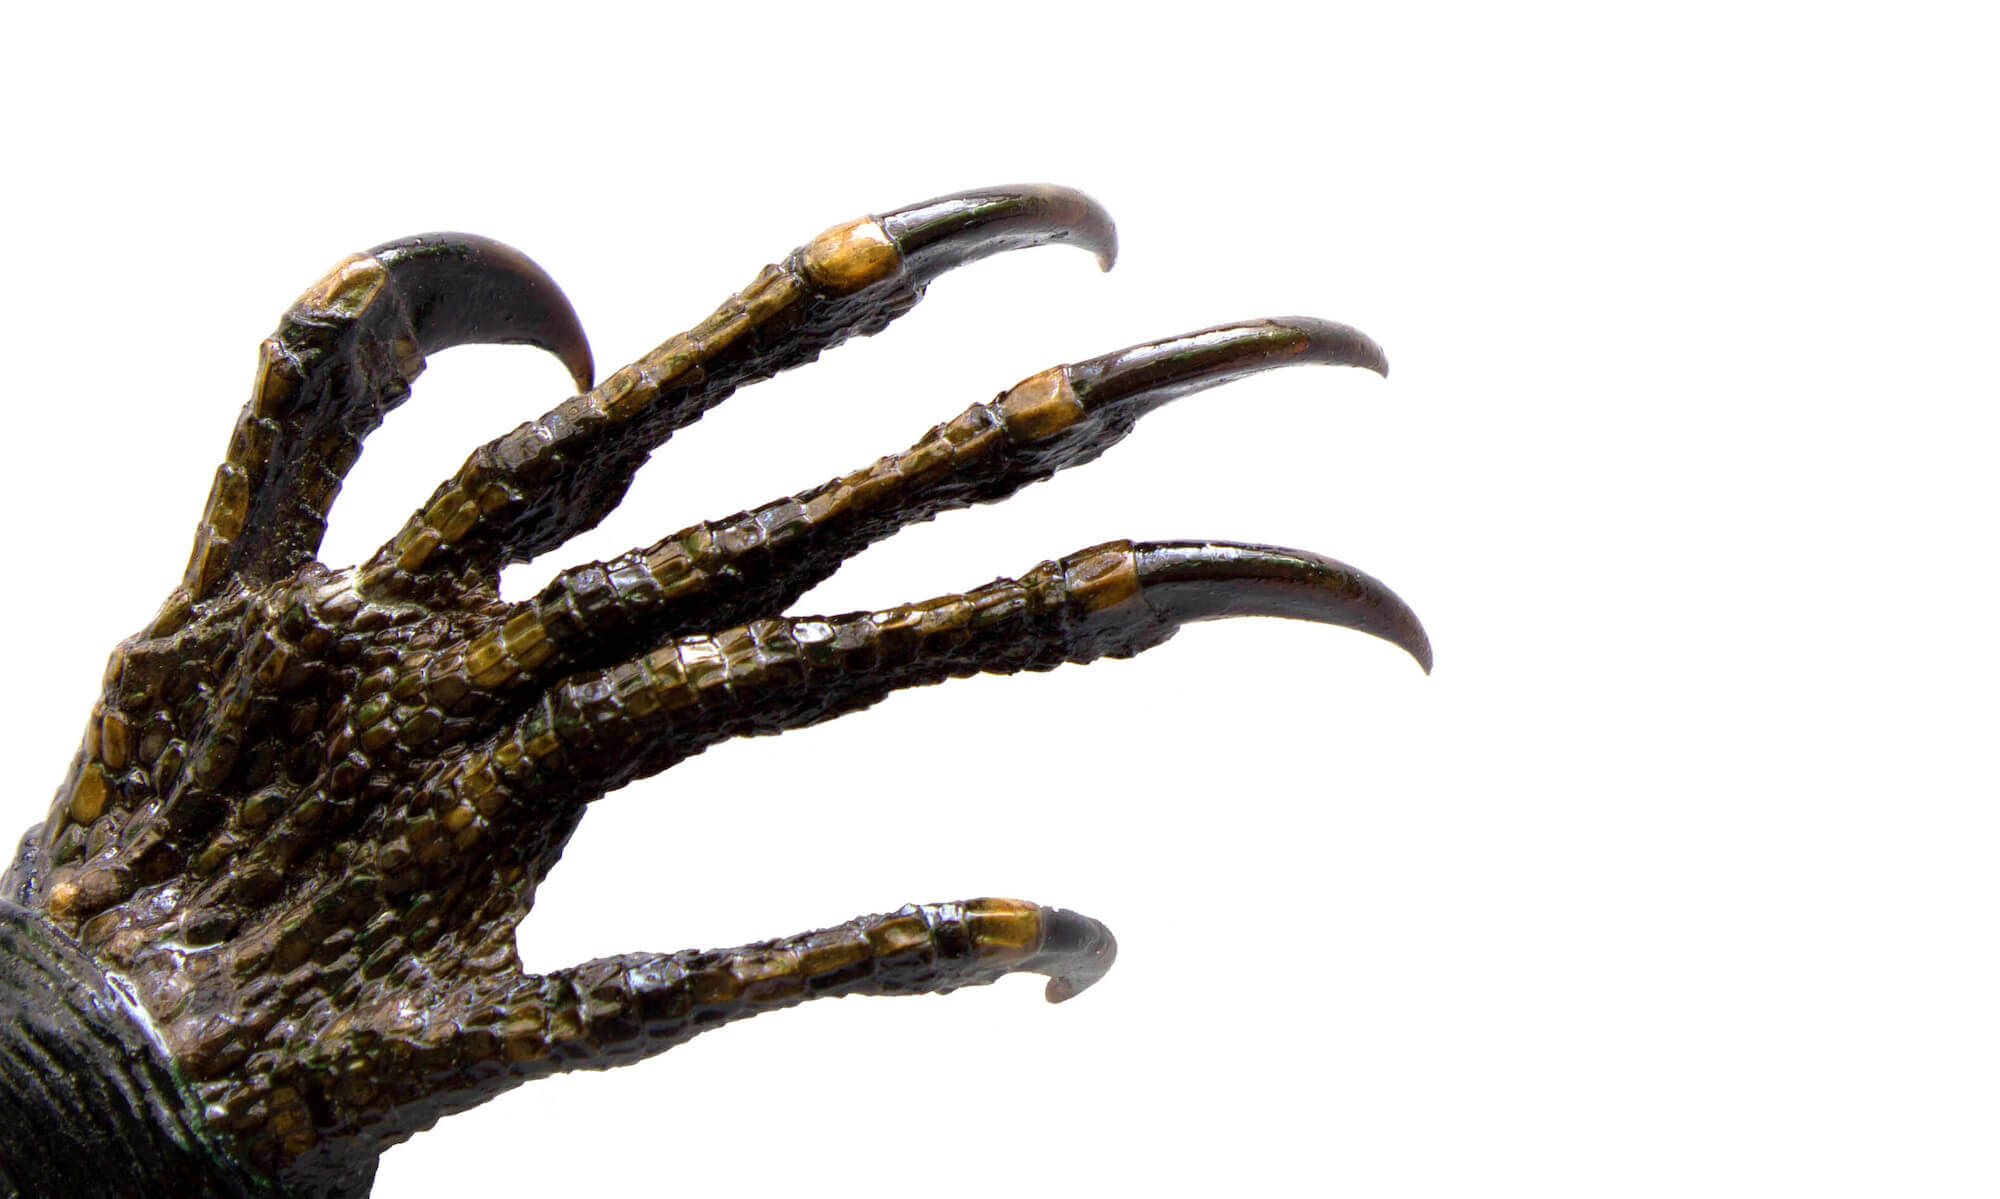 a monster's claw with long sharp nails